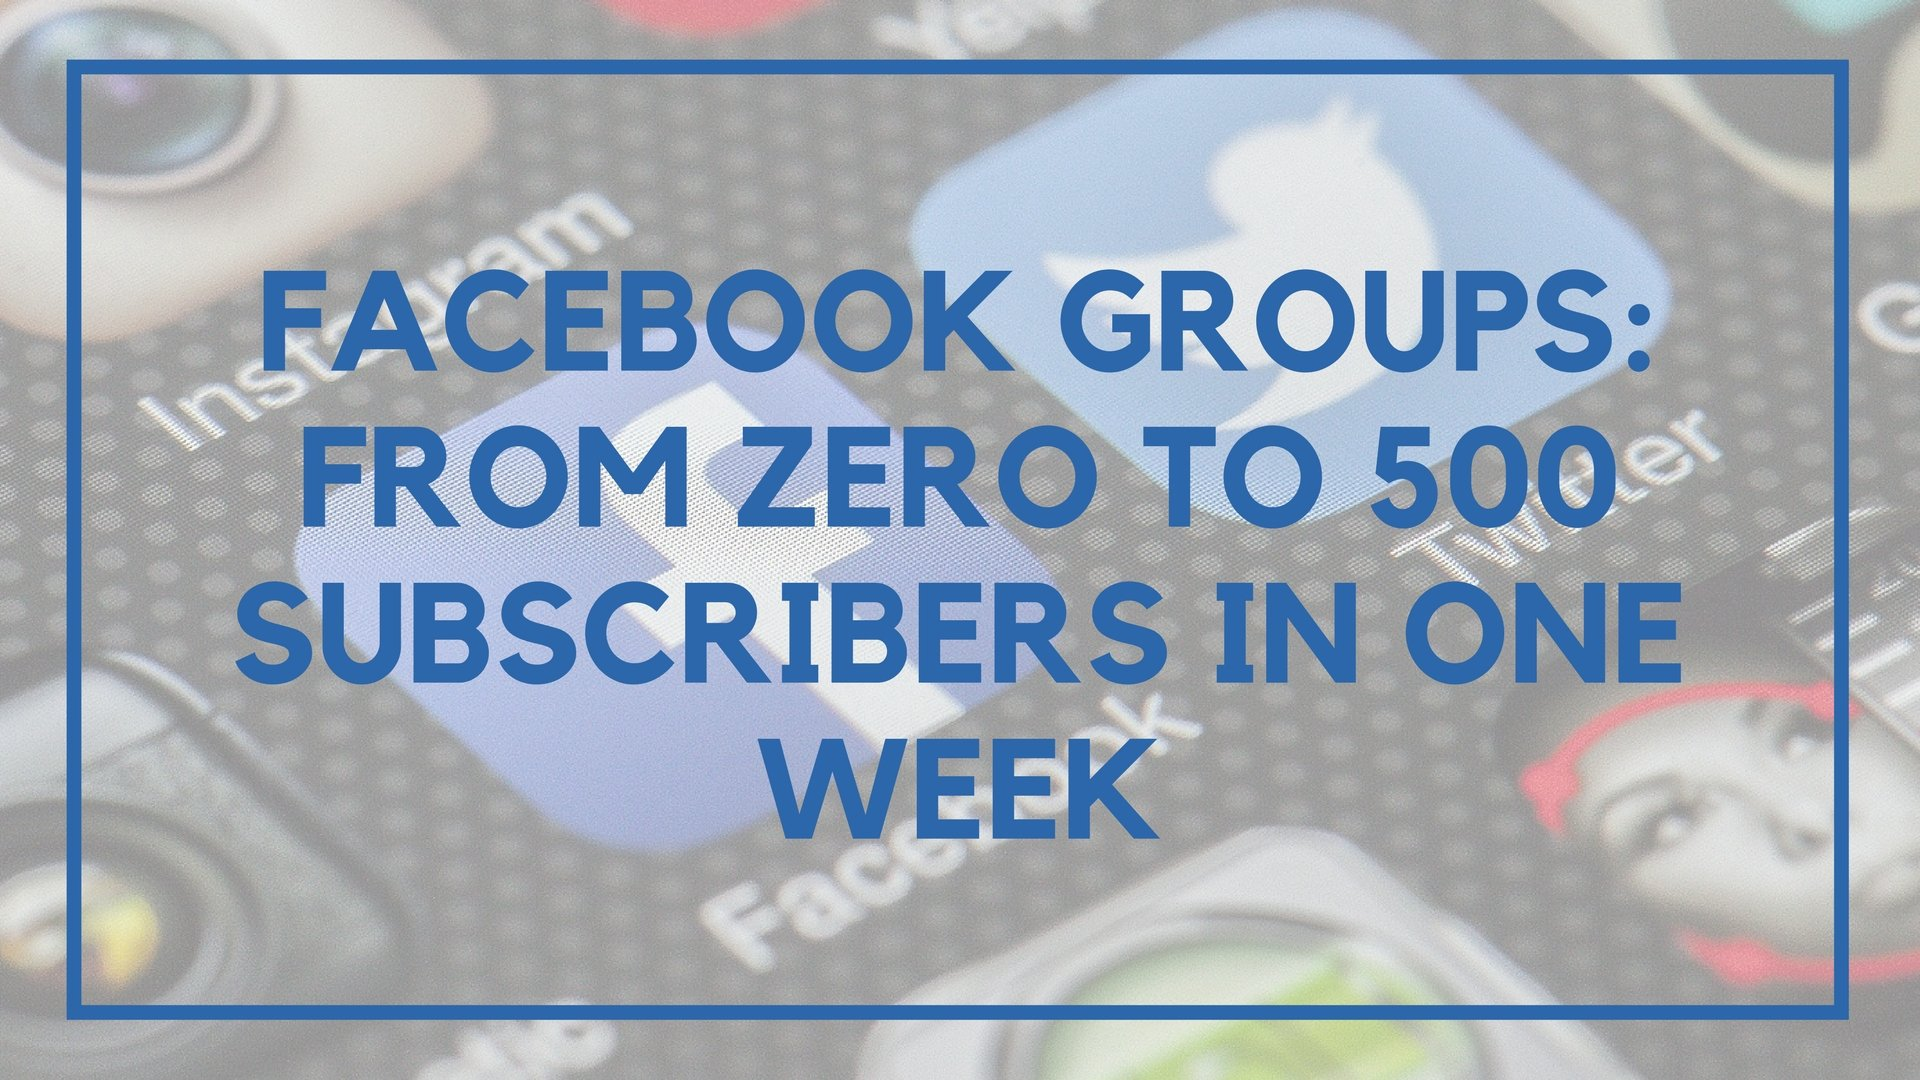 Facebook Groups: From Zero to 500 Subscribers in One Week